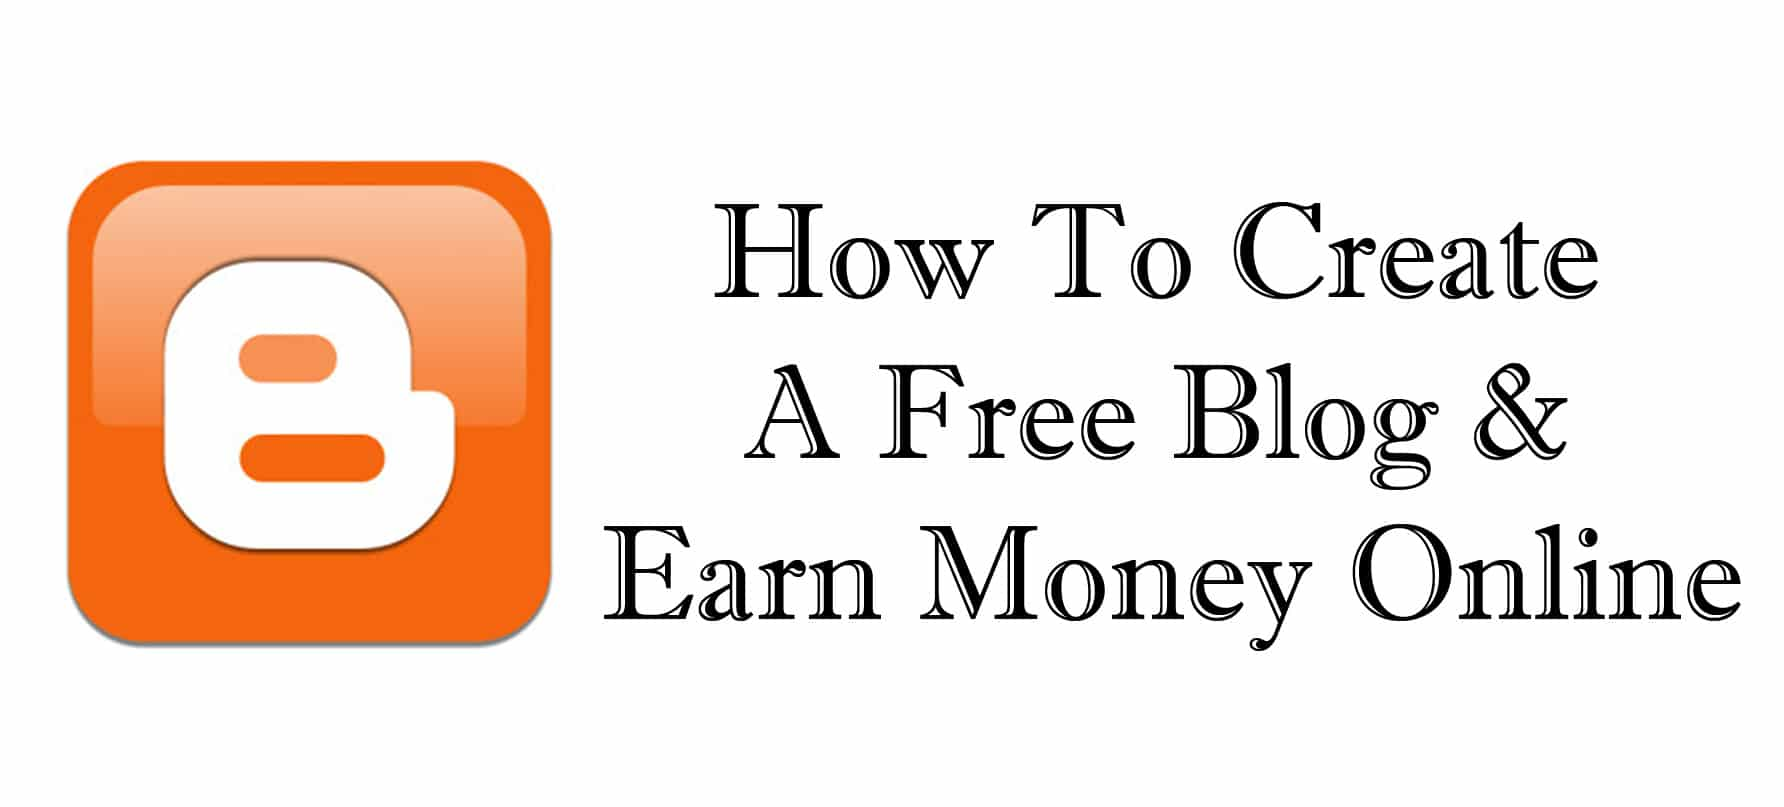 How To Create A Free Blog Earn Money Online Step By